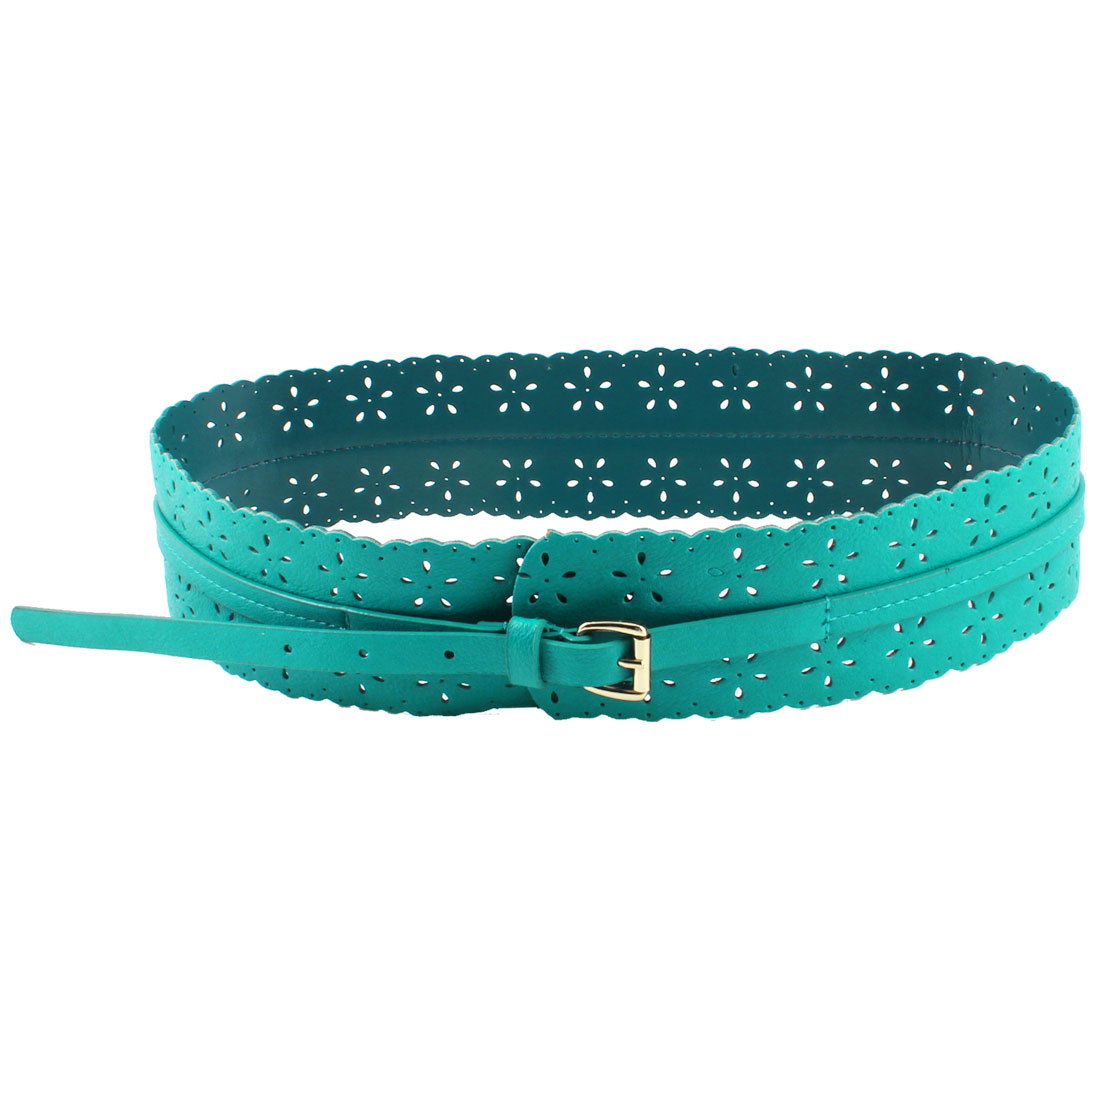 Ladies One Pin Hollow Out Floral Faux Leather Adjustable Waist Belt Turquoise